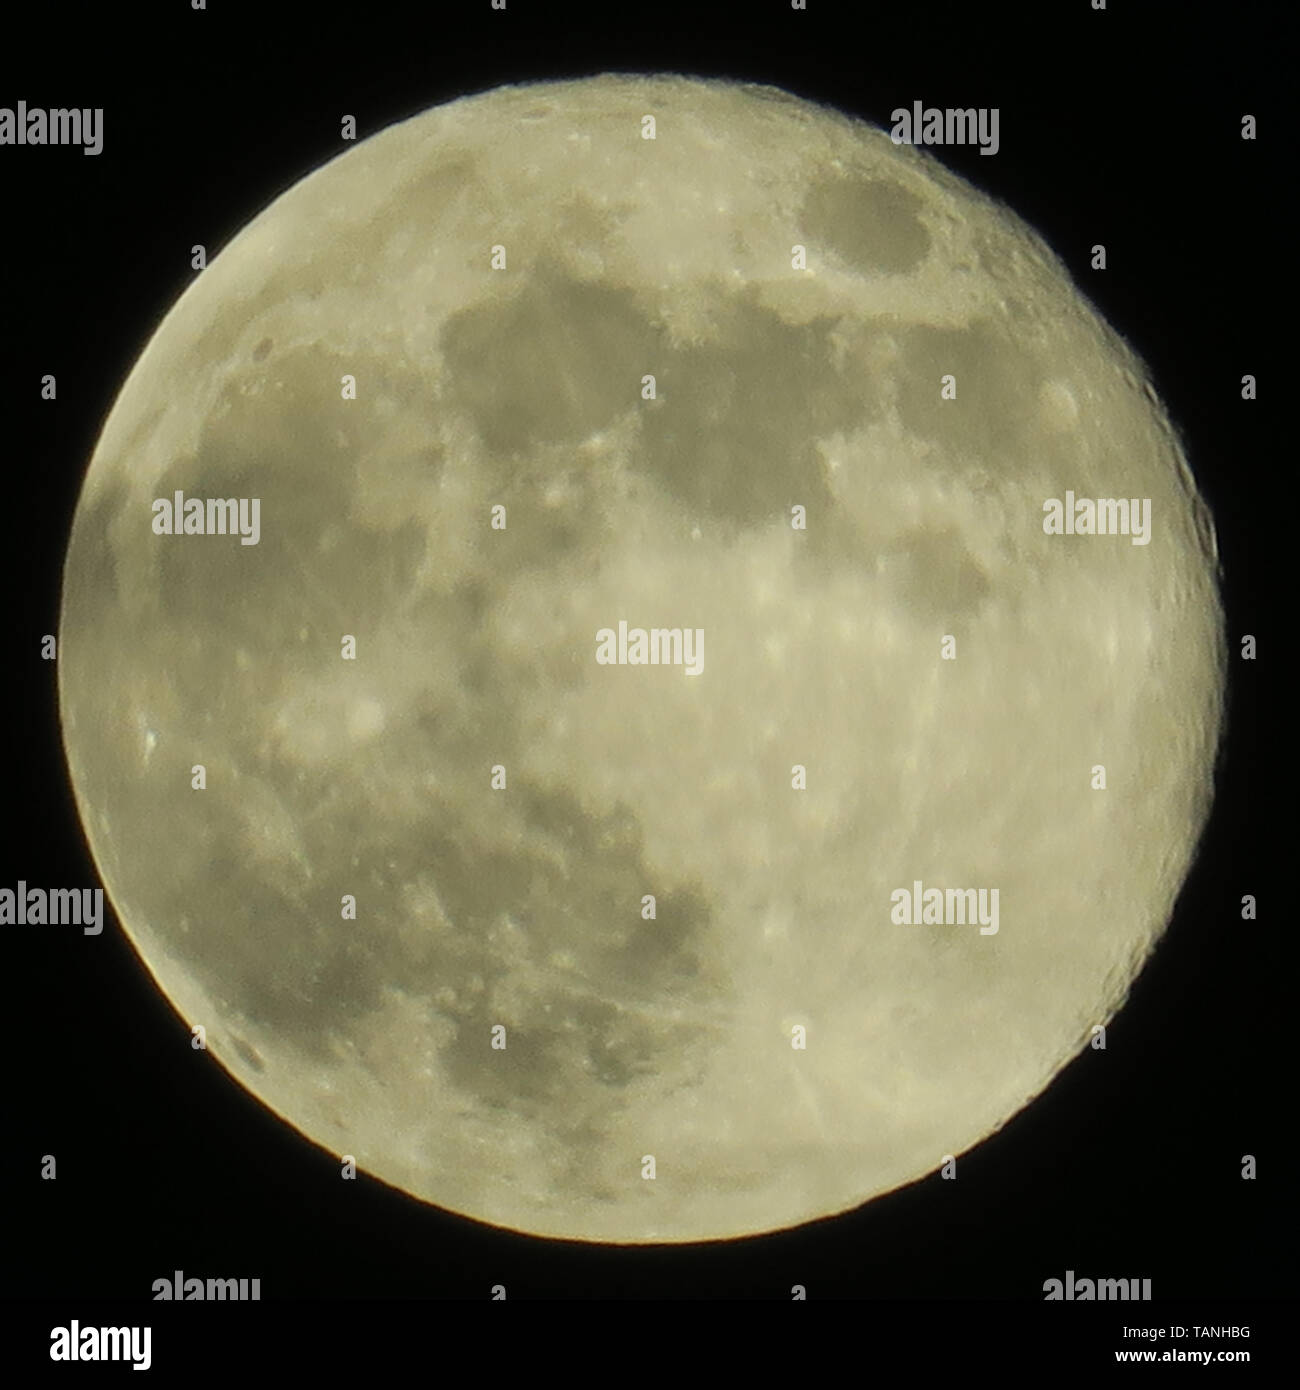 clear sky and fullmoon at night - Stock Image